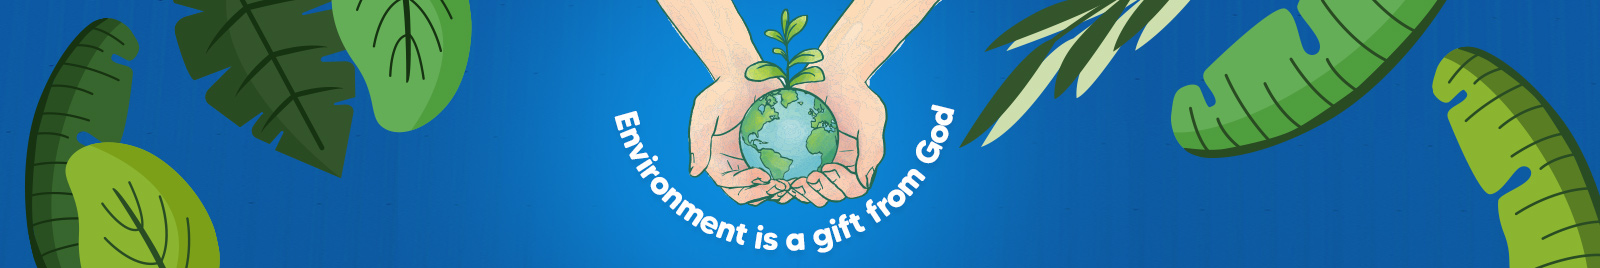 Environment is a gift from God